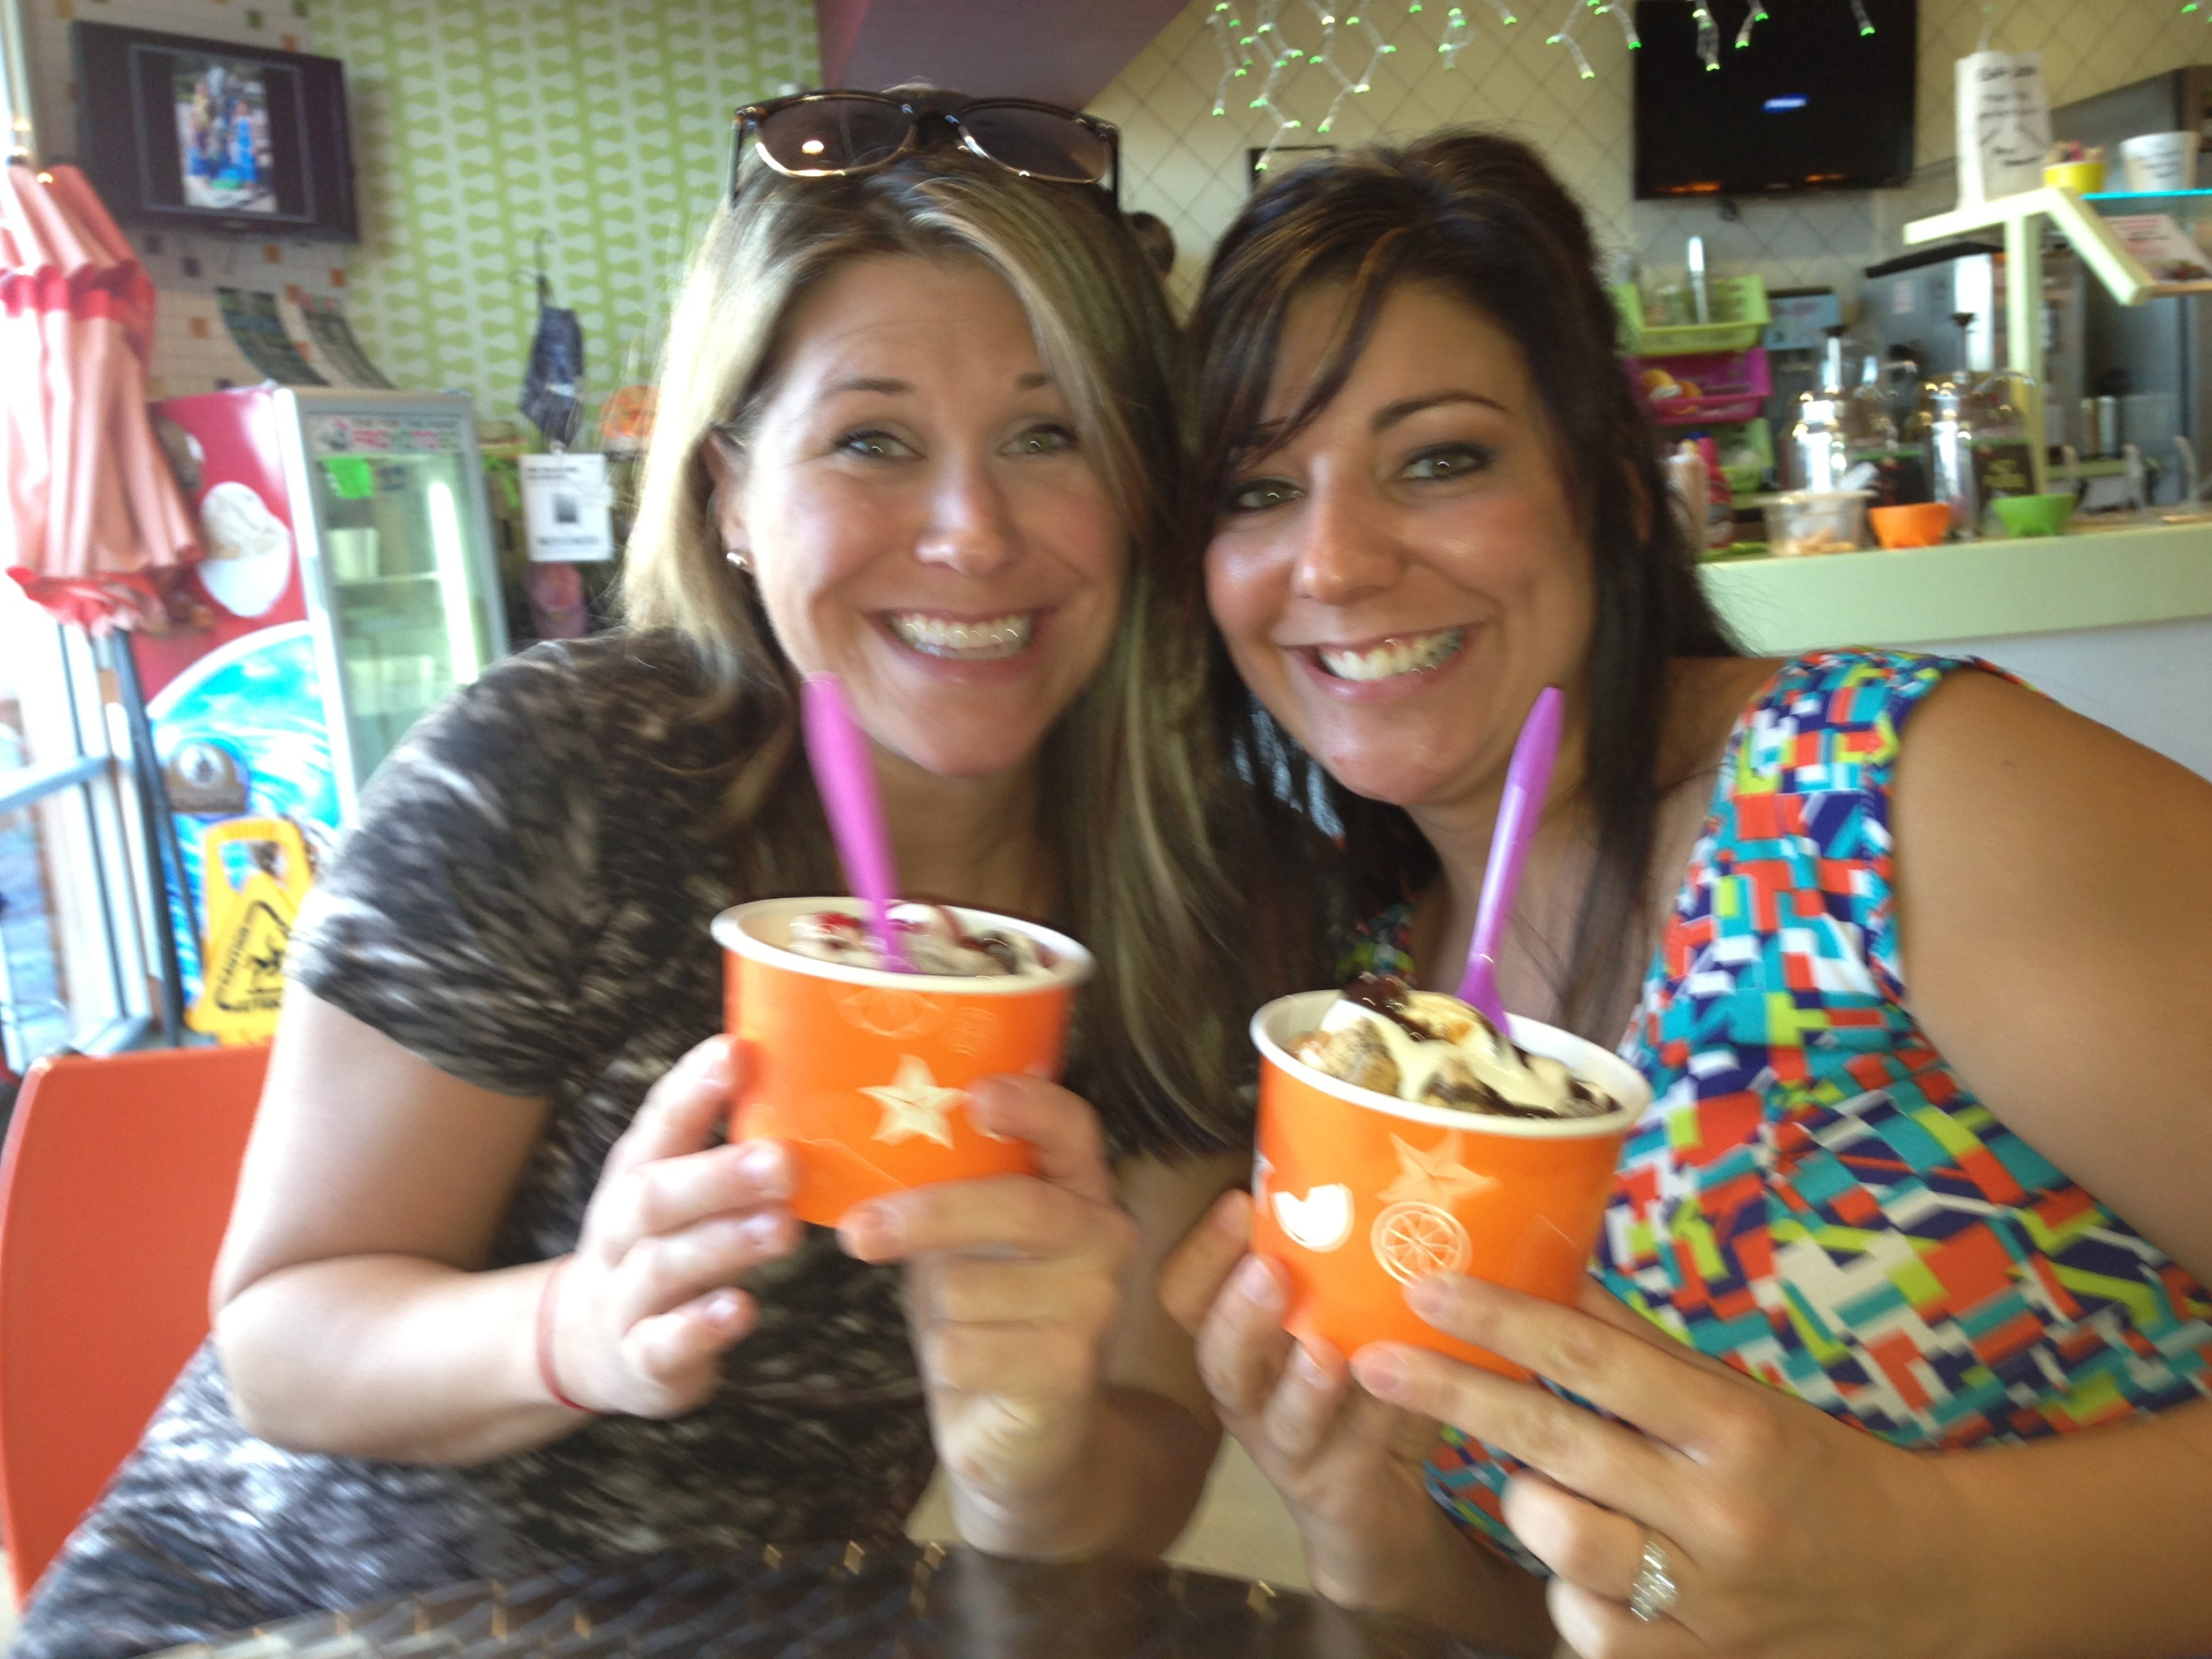 Me & Lauren (aka, Lolly) sharing ice cream together when I visited her in FL after her second child was born.